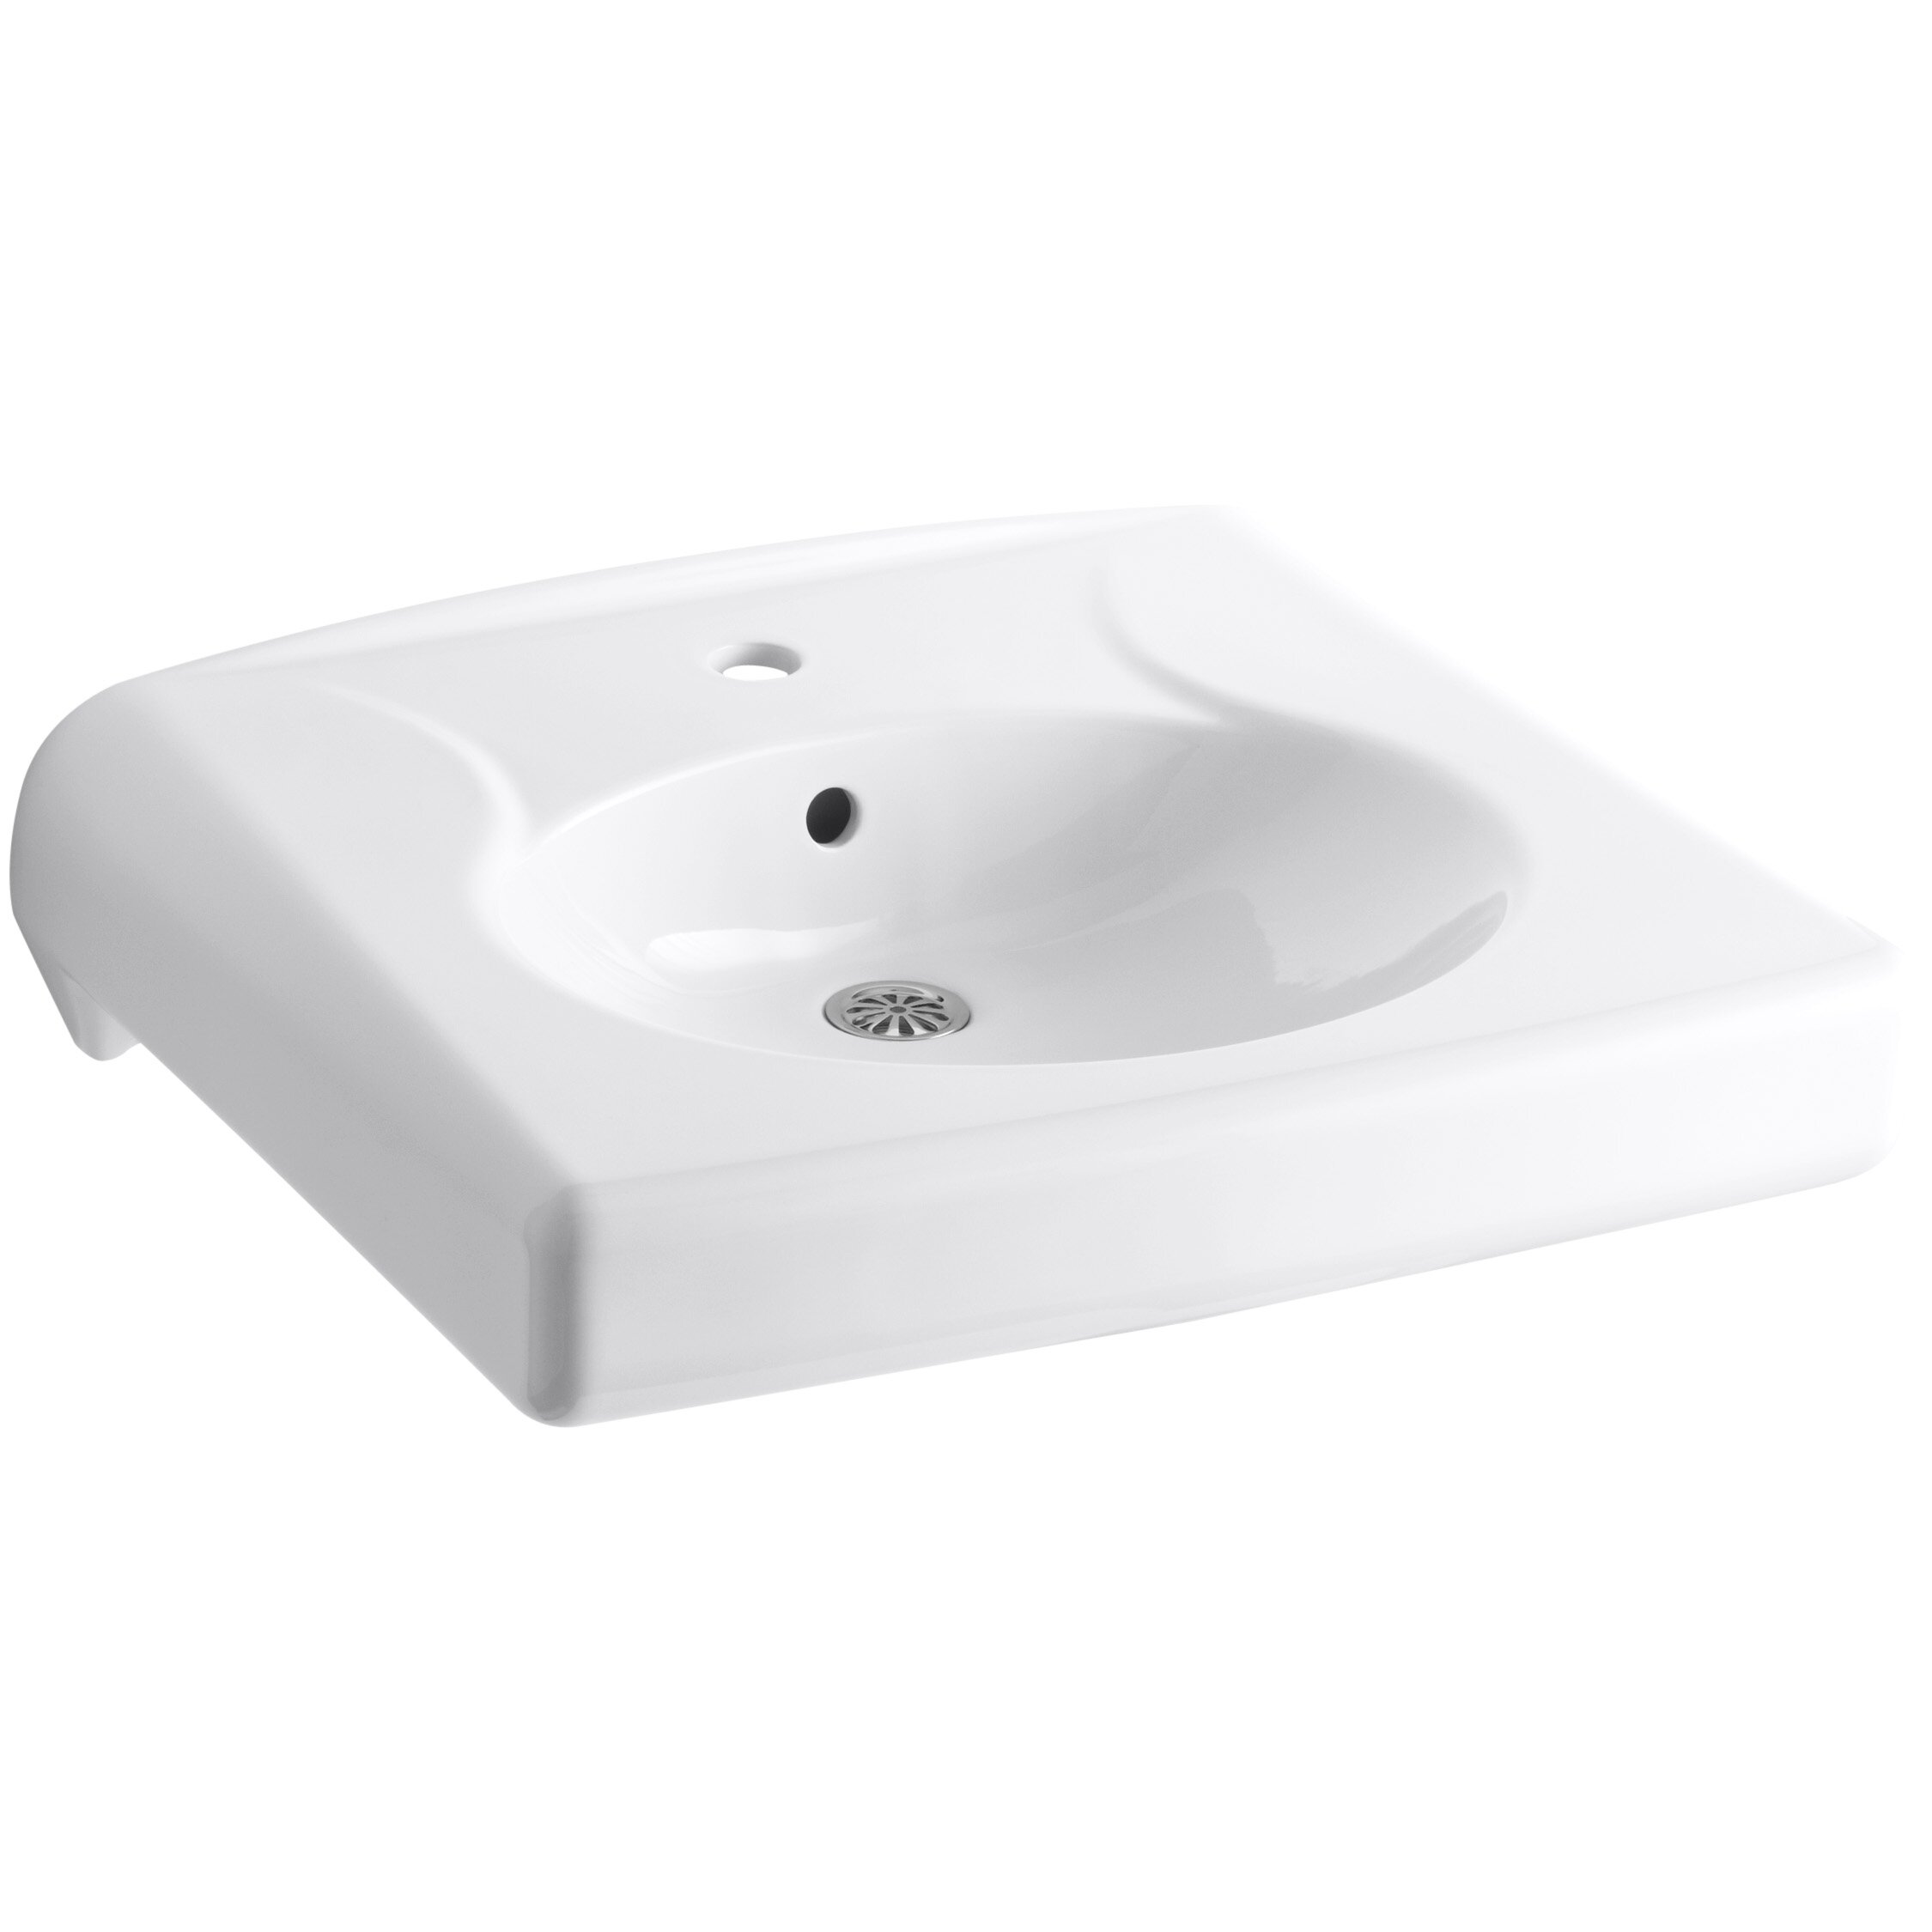 ... Wall-Mounted or Concealed Carrier Arm Mounted Commercial Bathroom Sink